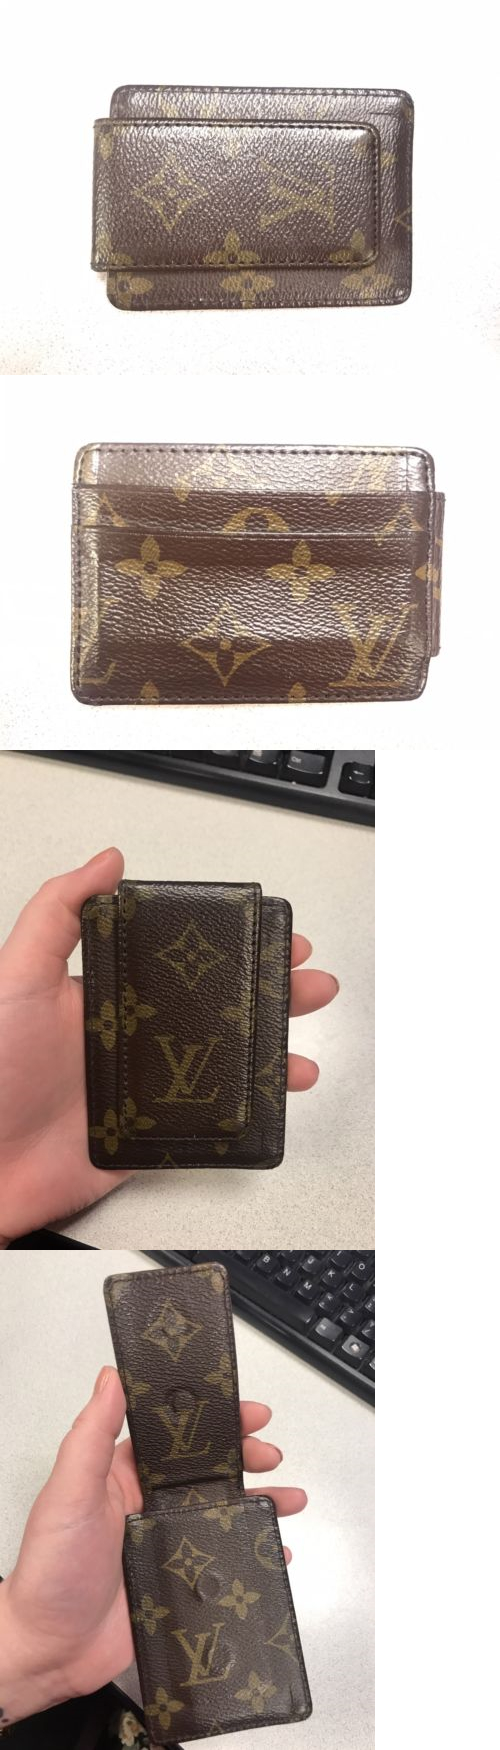 Business and Credit Card Cases 105544: Louis Vuitton Monogram Card ...